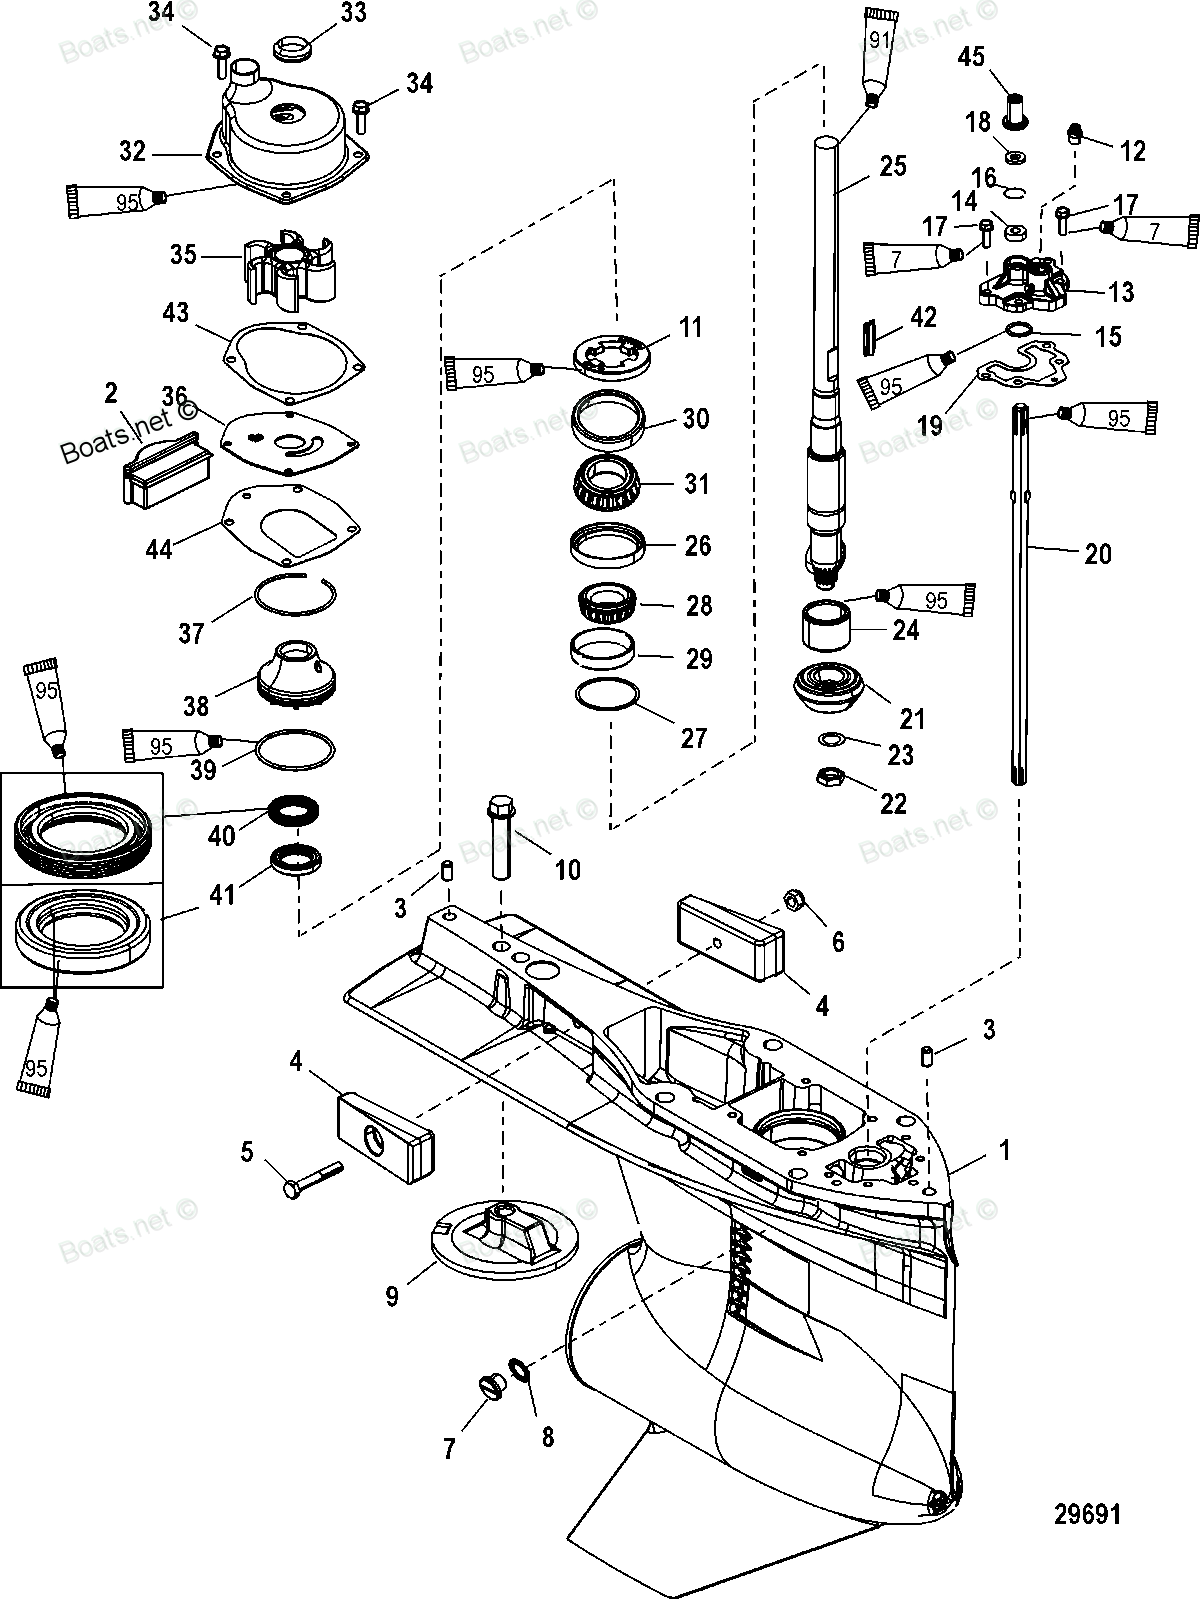 on Yamaha 150 Outboard Wiring Diagram